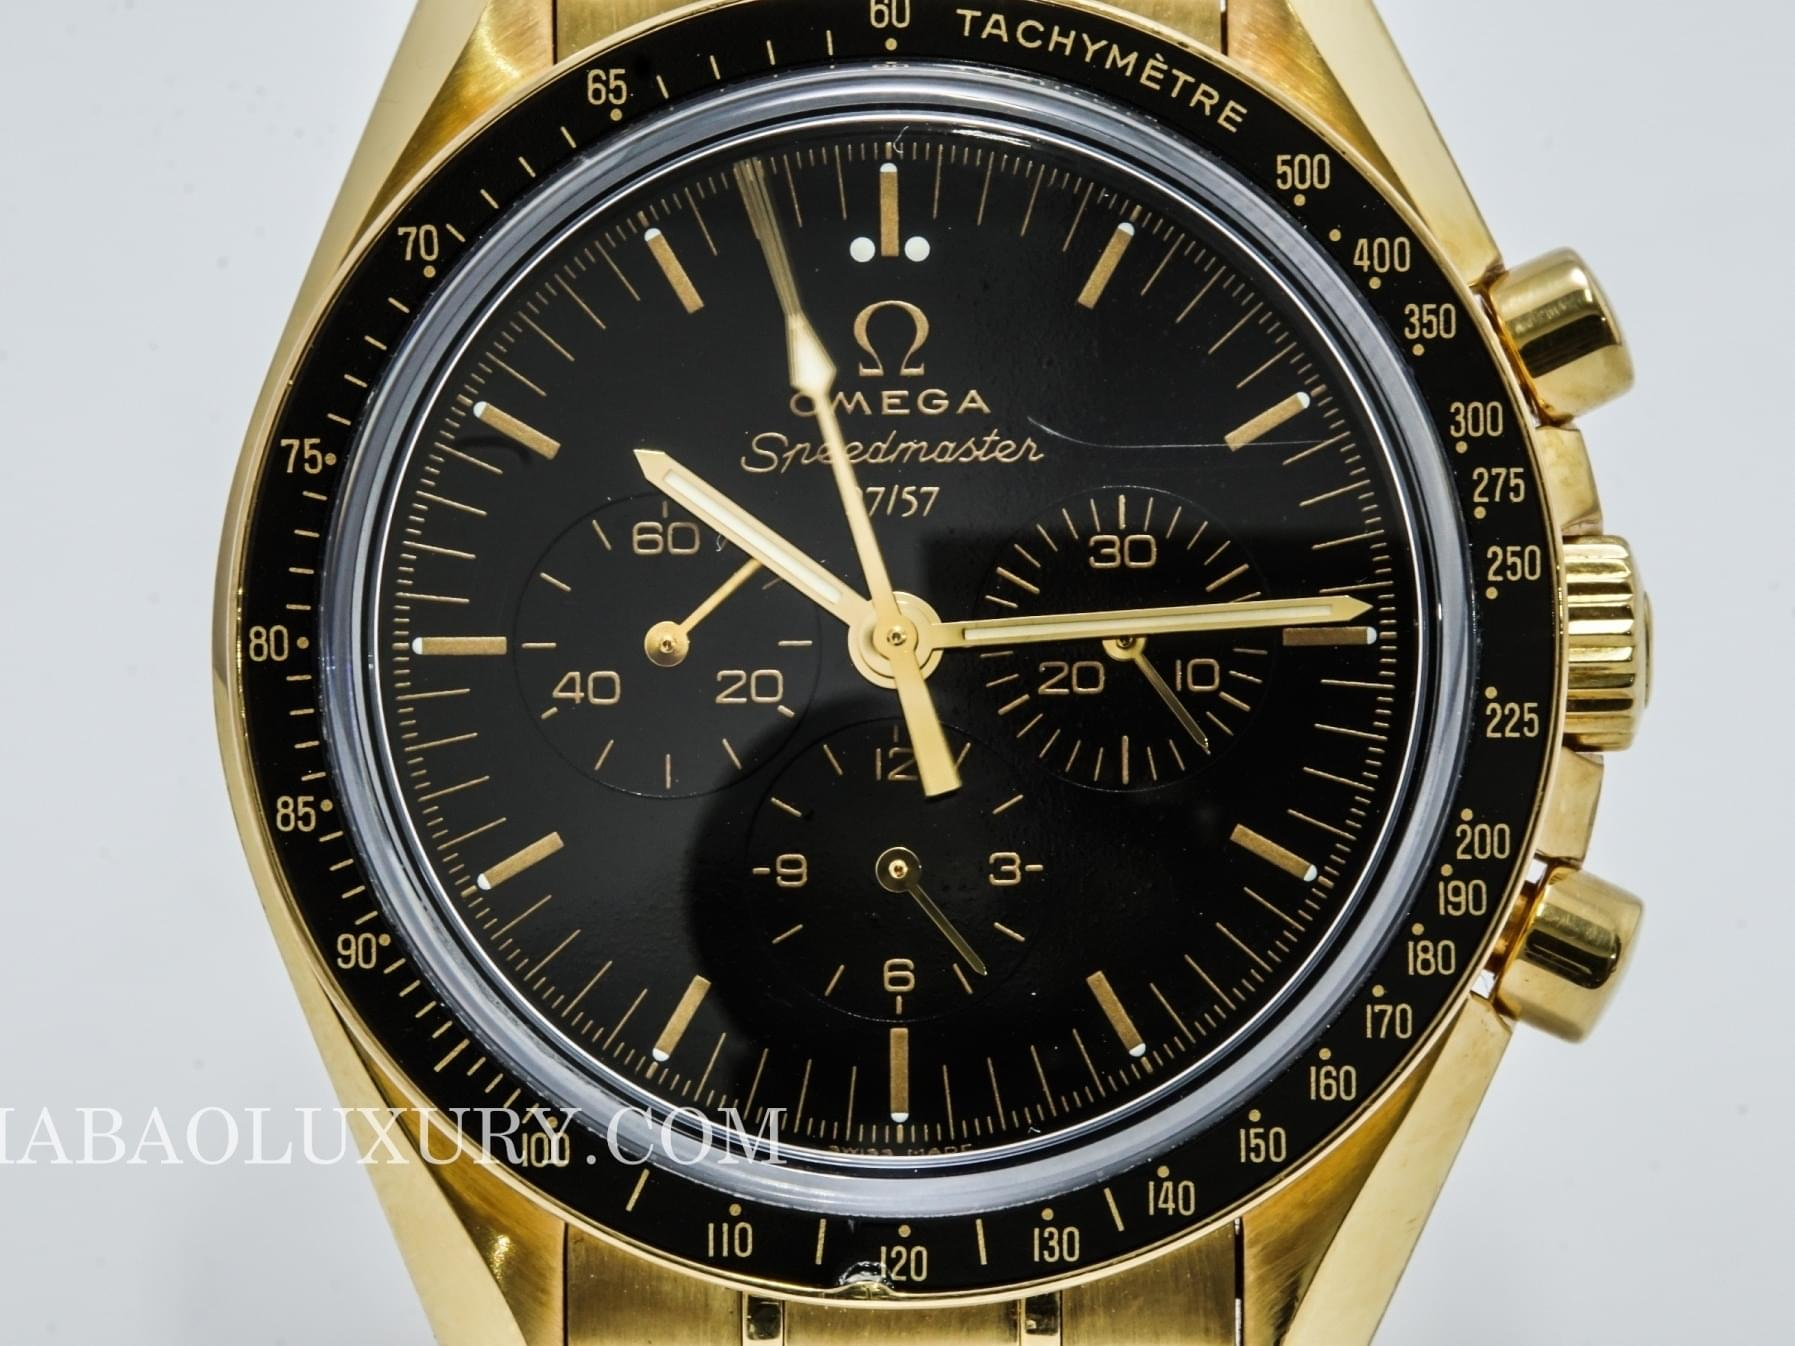 Đồng Hồ Omega Speedmaster 50th Anniversary Limited Series 311.63.42.50.01.002